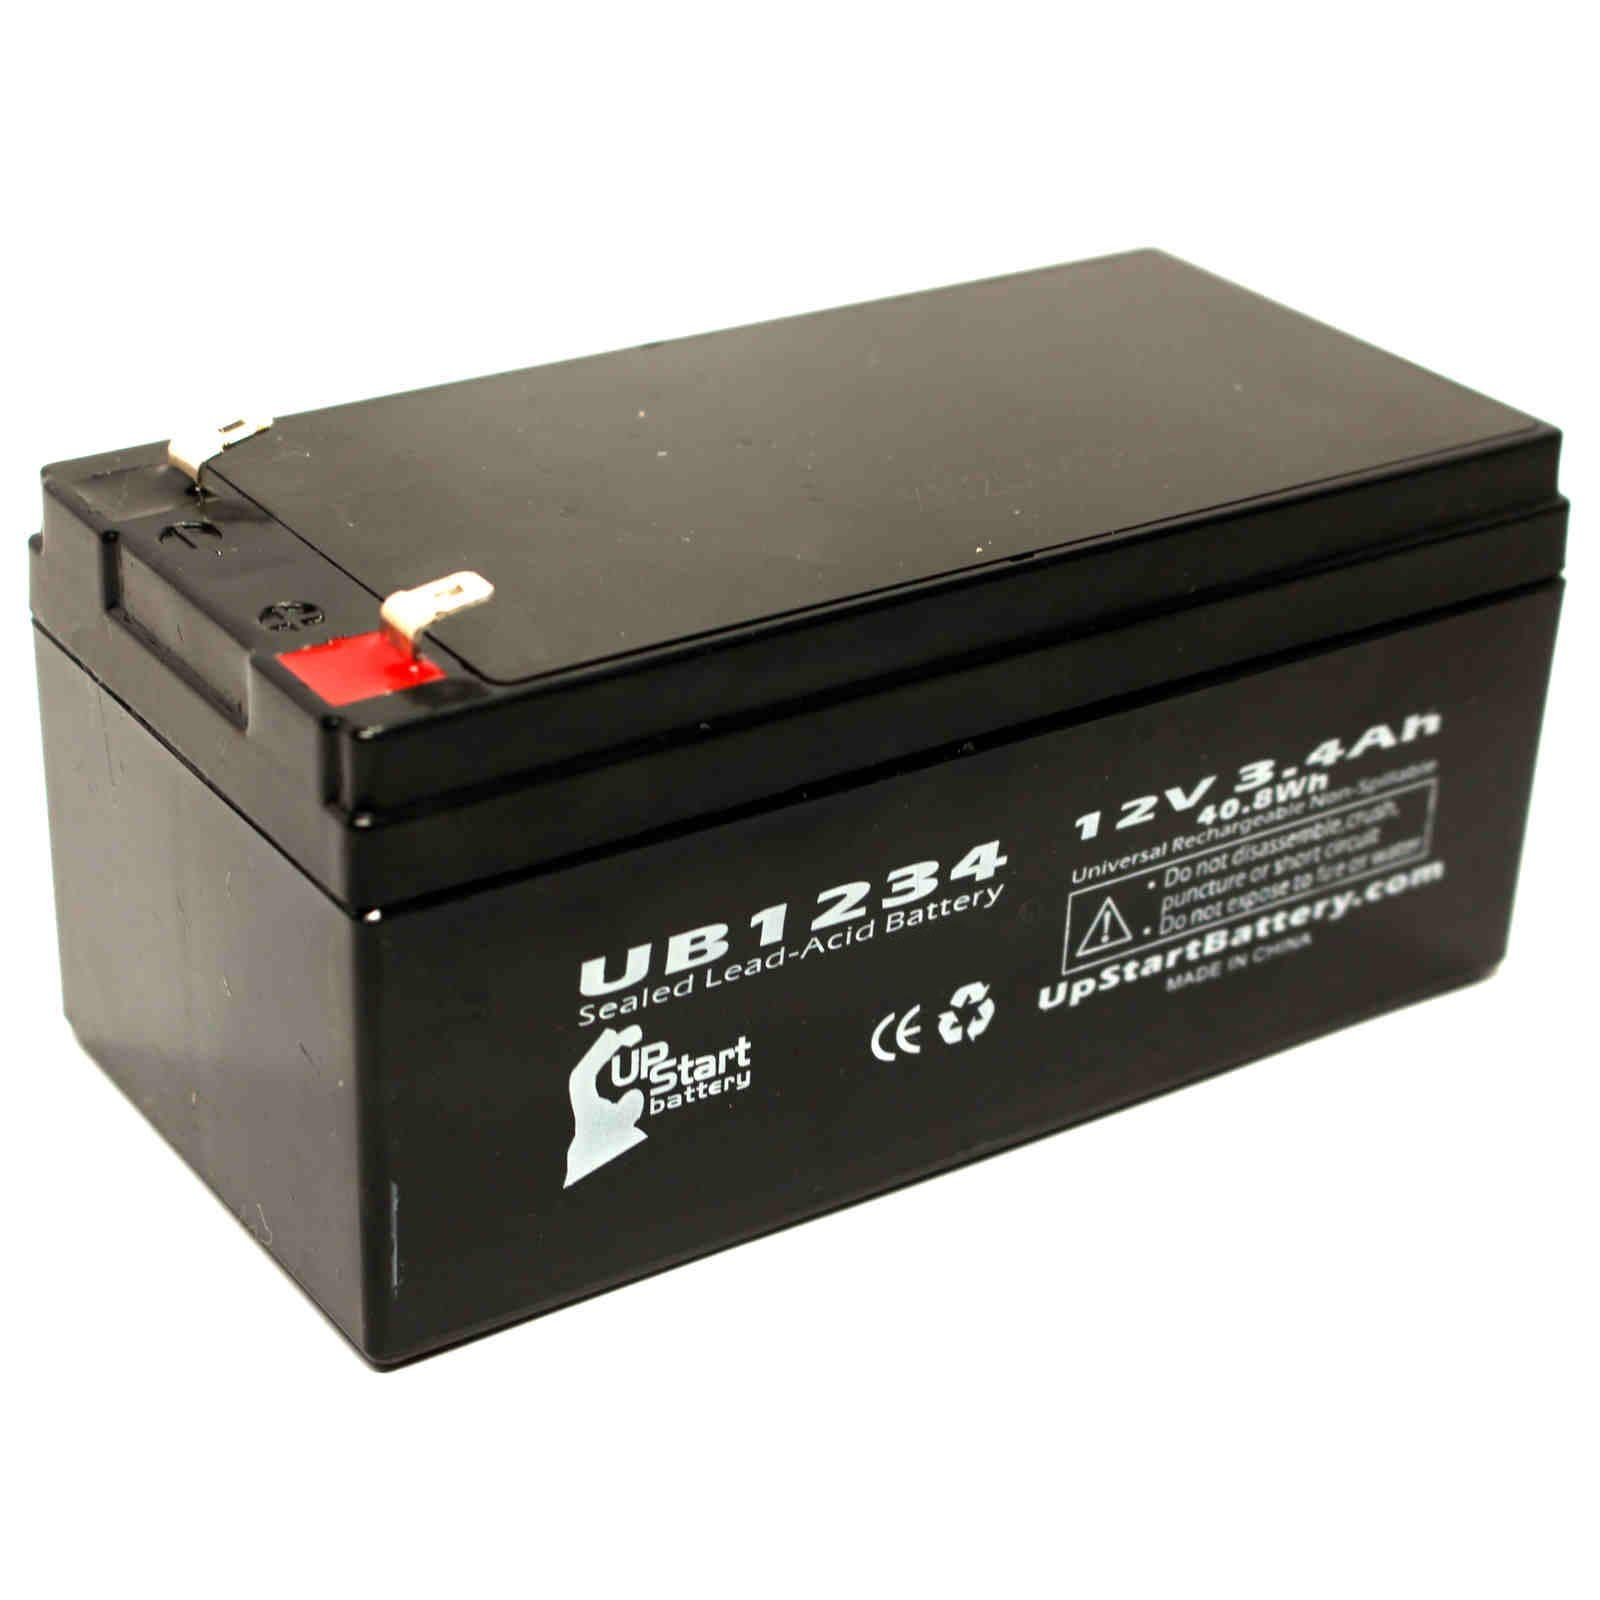 APC BACK-UPS ES BE350G Battery - Replacement UB1234 Universal Sealed Lead Acid Battery (12V, 3.4Ah, 3400mAh, F1 Terminal, AGM, SLA) - Includes TWO F1 to F2 Terminal Adapters - Also Replaces Honeywell 5000, Cyberpower CP425SLG, CP425G, APC 35 by UpStart Battery